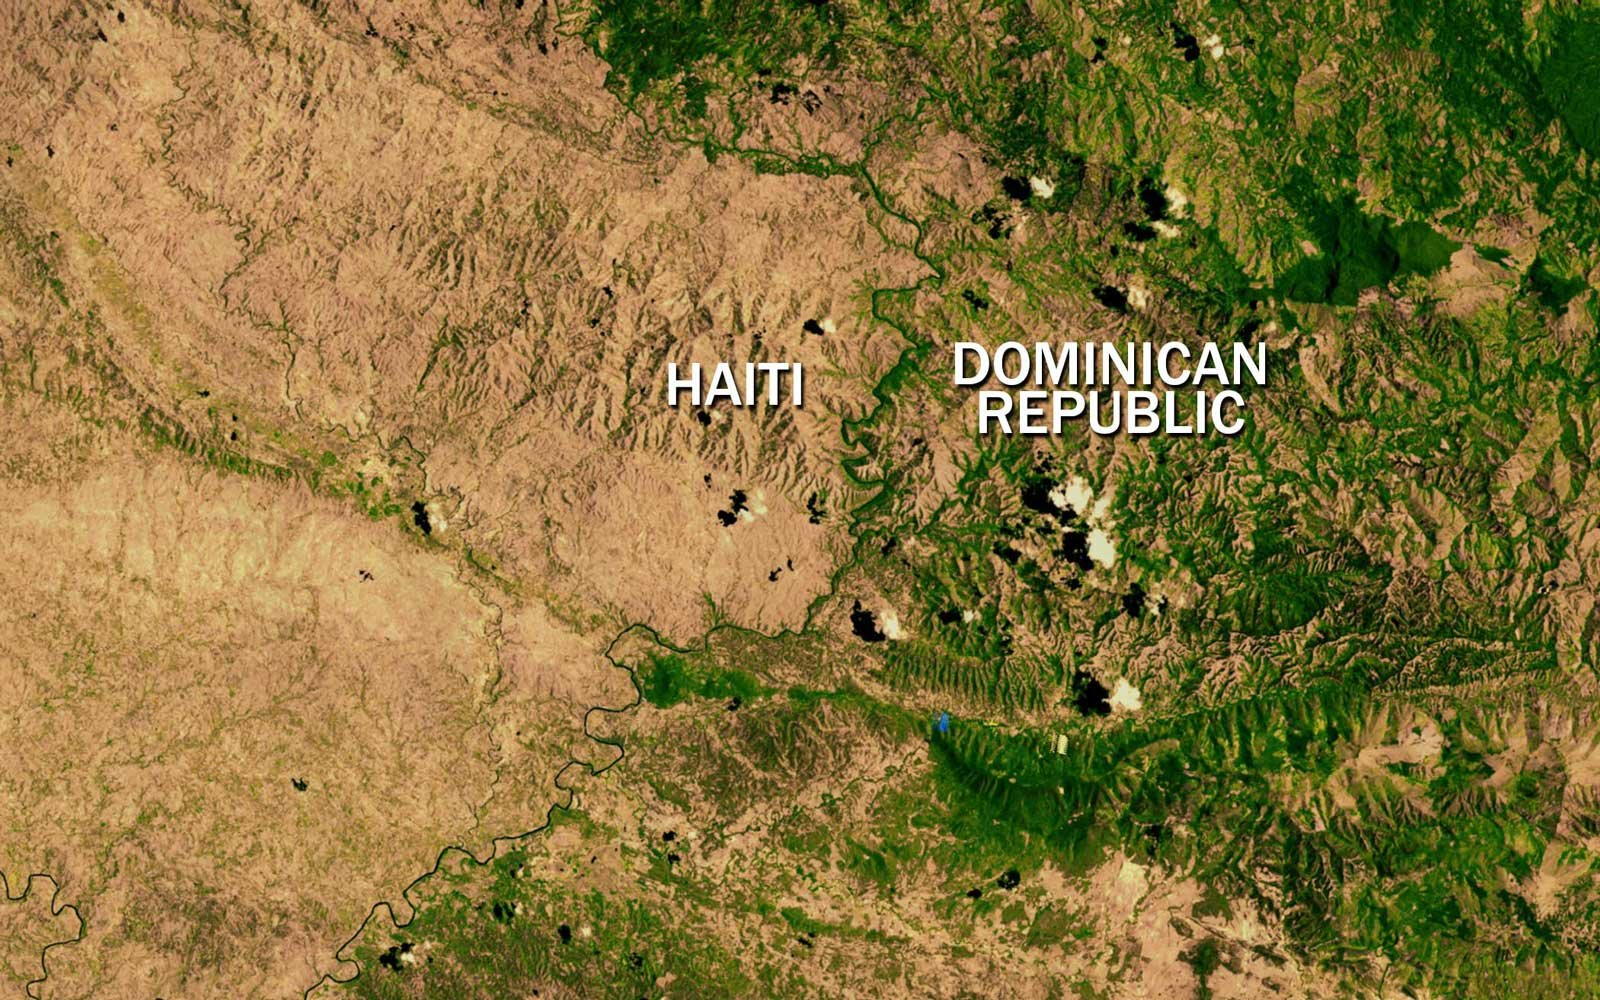 International Borders Haiti Dominican Republic